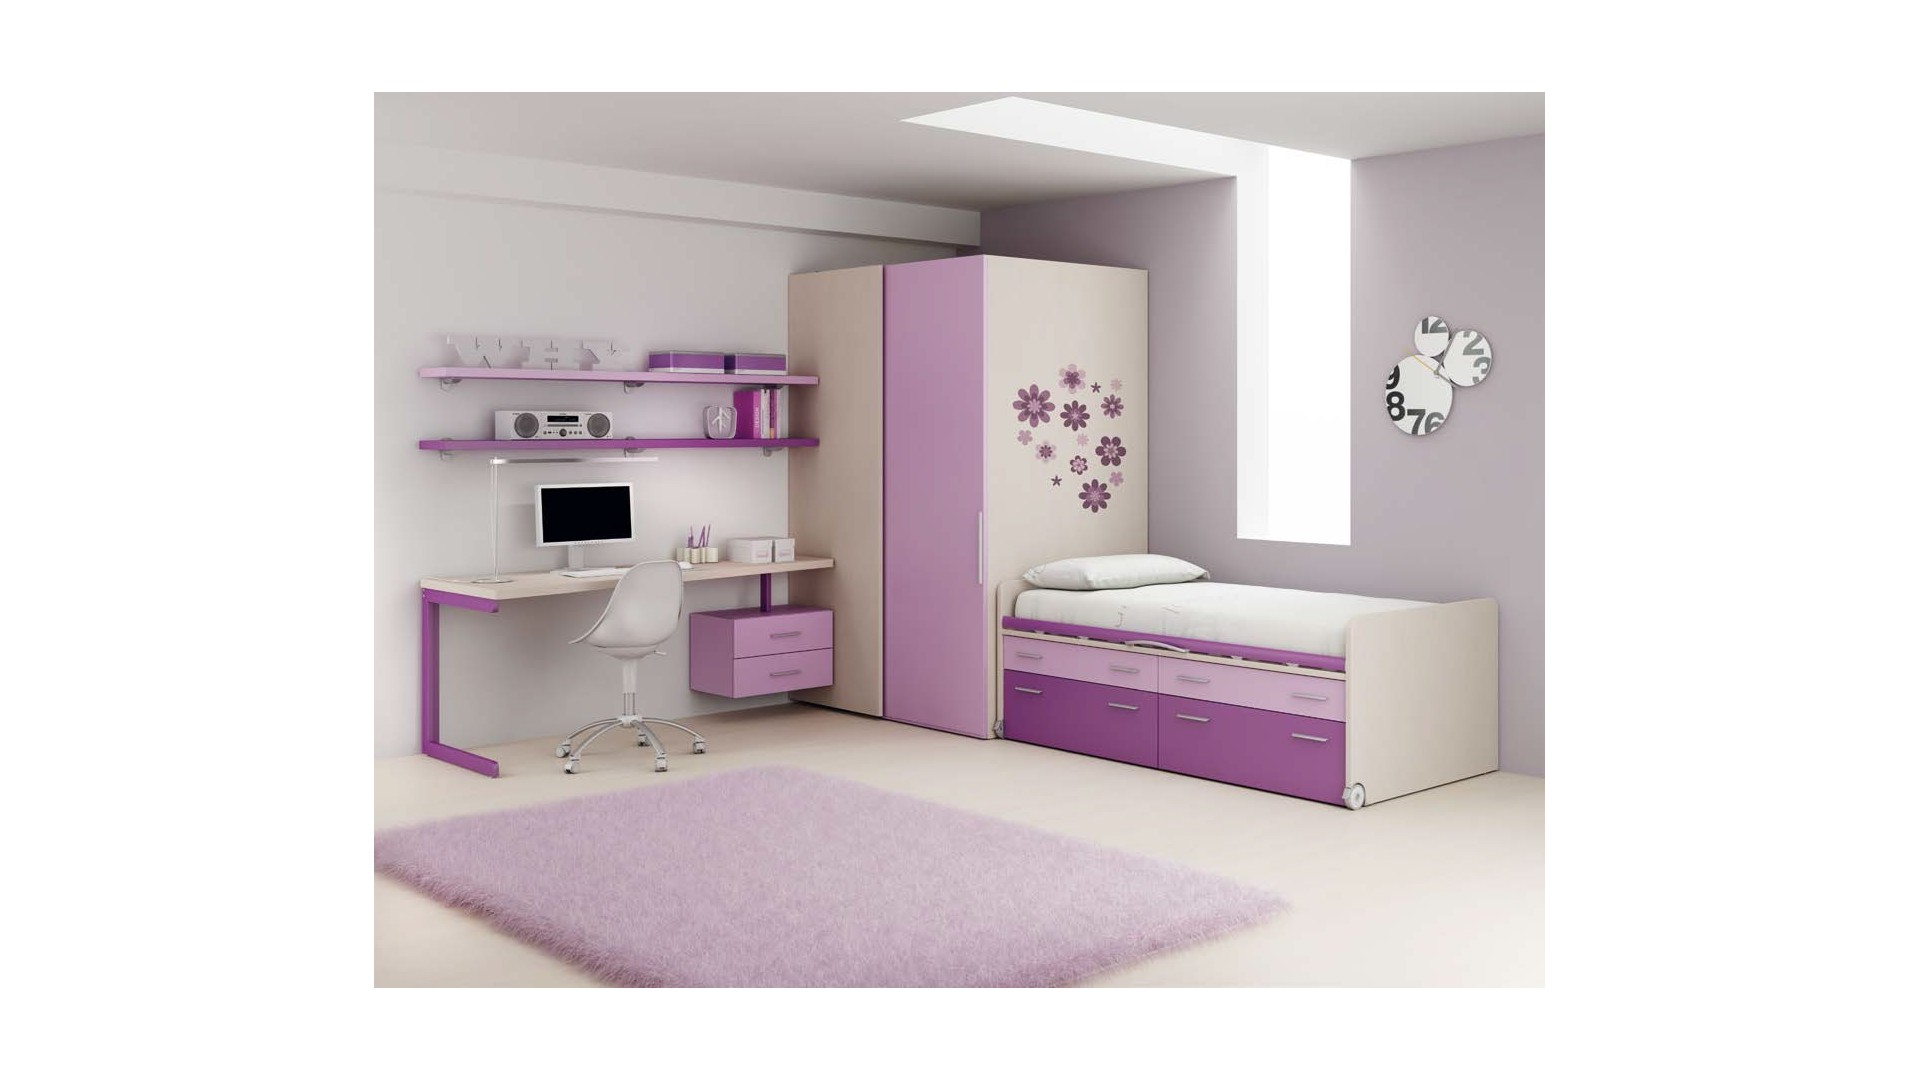 chambre fille pourvu d 39 un lit avec rangement moretti compact so nuit. Black Bedroom Furniture Sets. Home Design Ideas